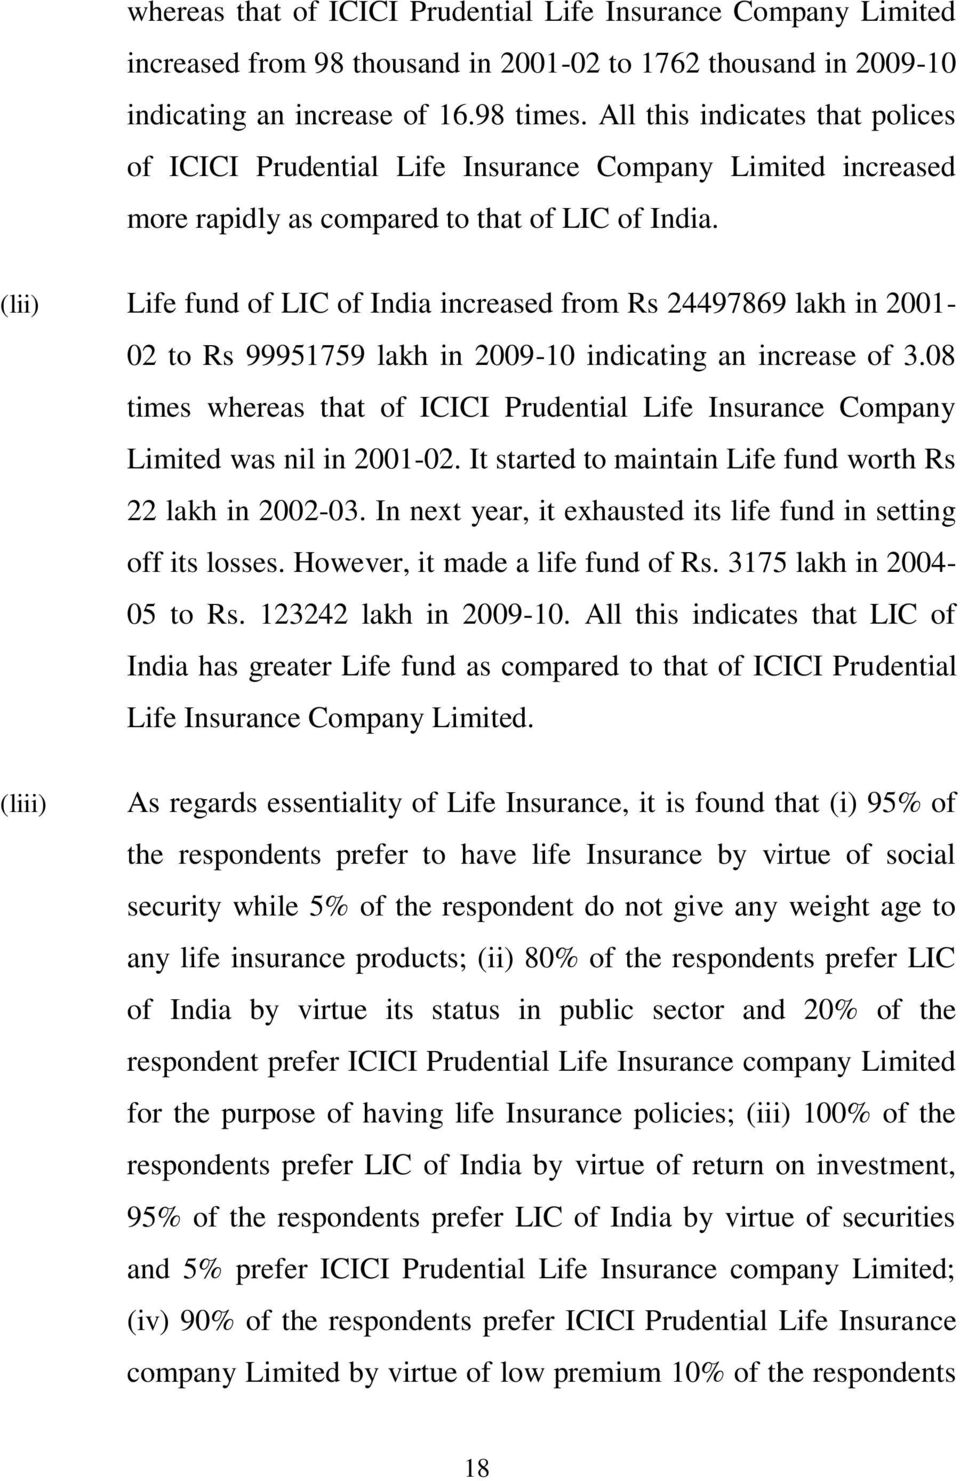 (lii) Life fund of LIC of India increased from Rs 24497869 lakh in 2001-02 to Rs 99951759 lakh in 2009-10 indicating an increase of 3.